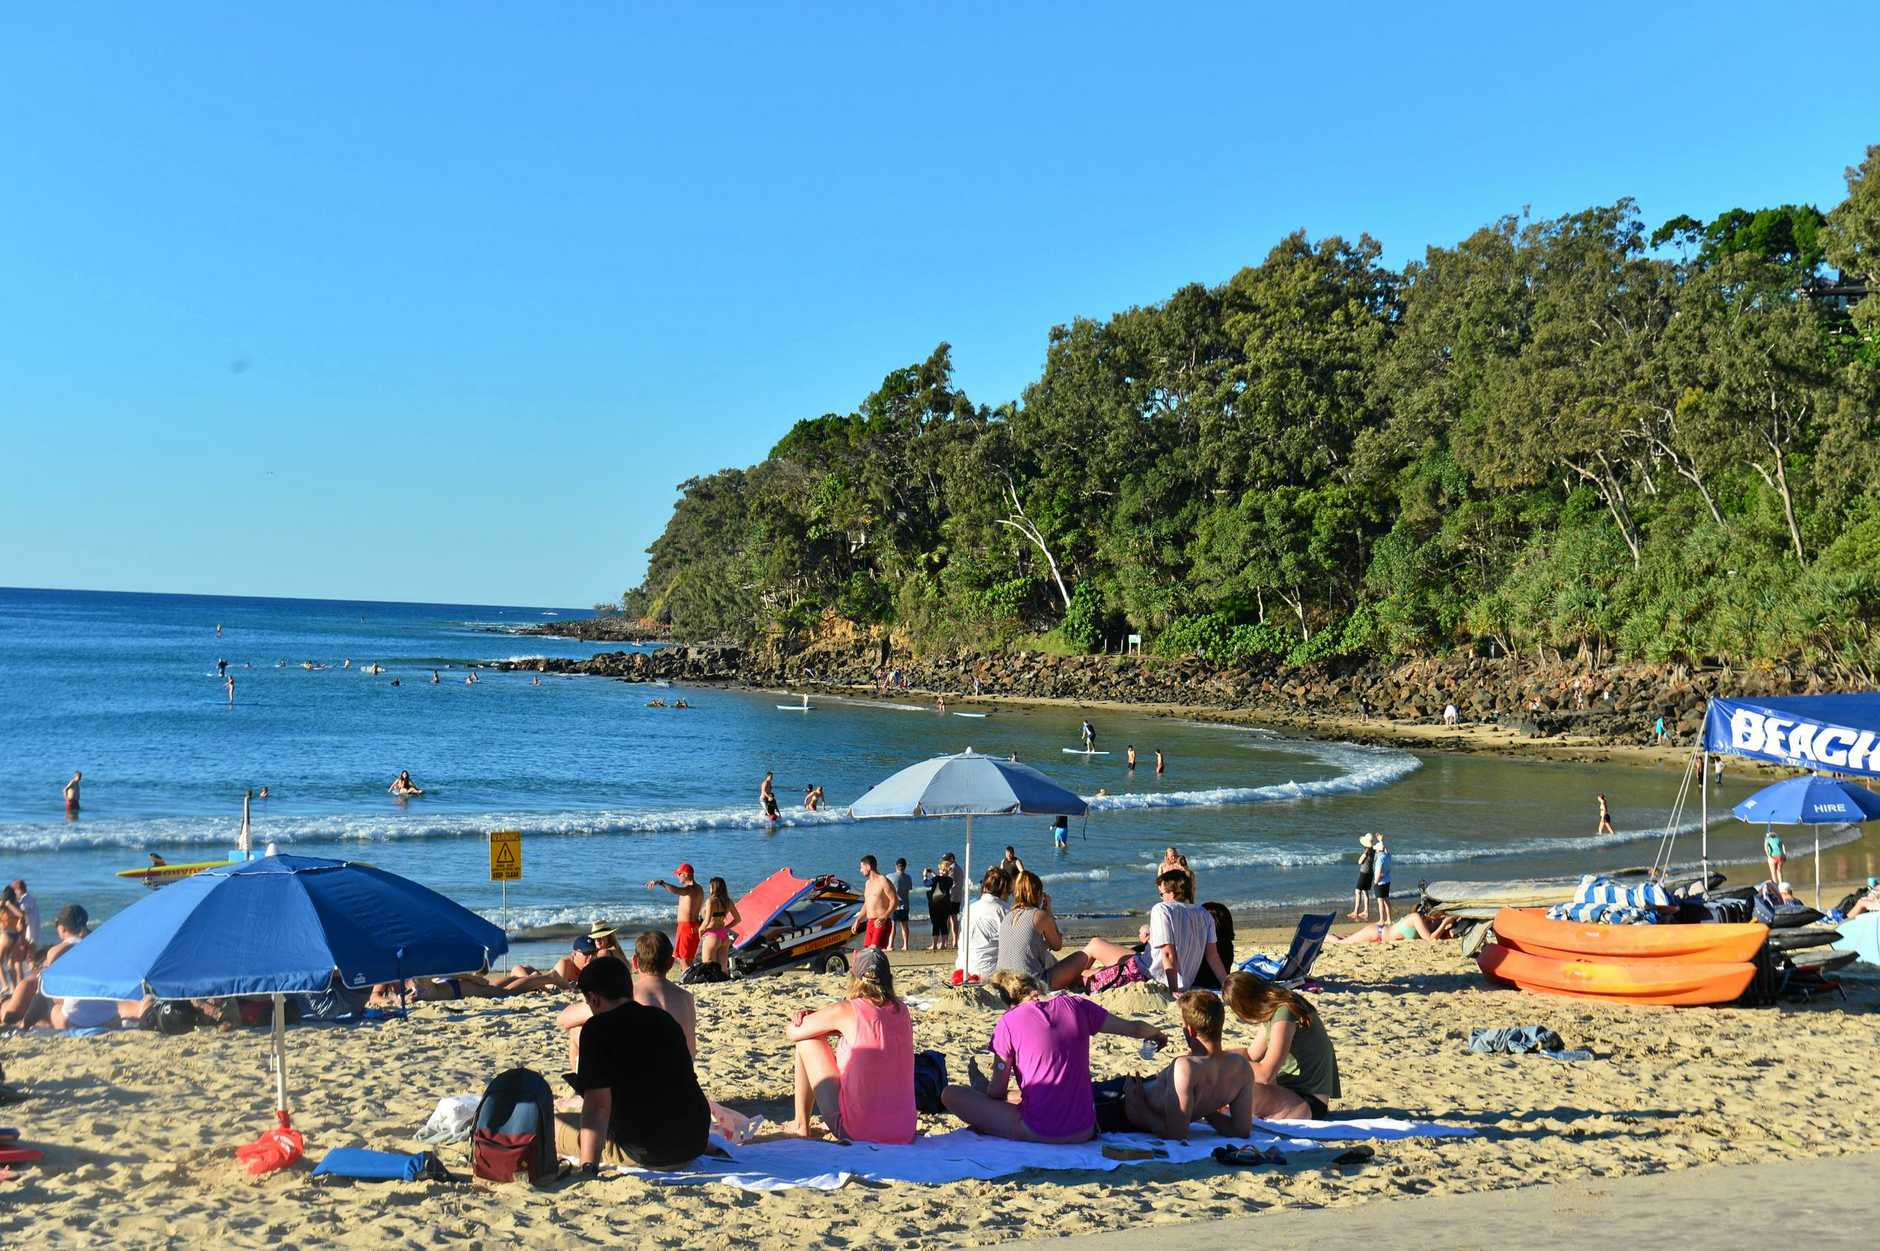 School Holidays continue this week for southern states.